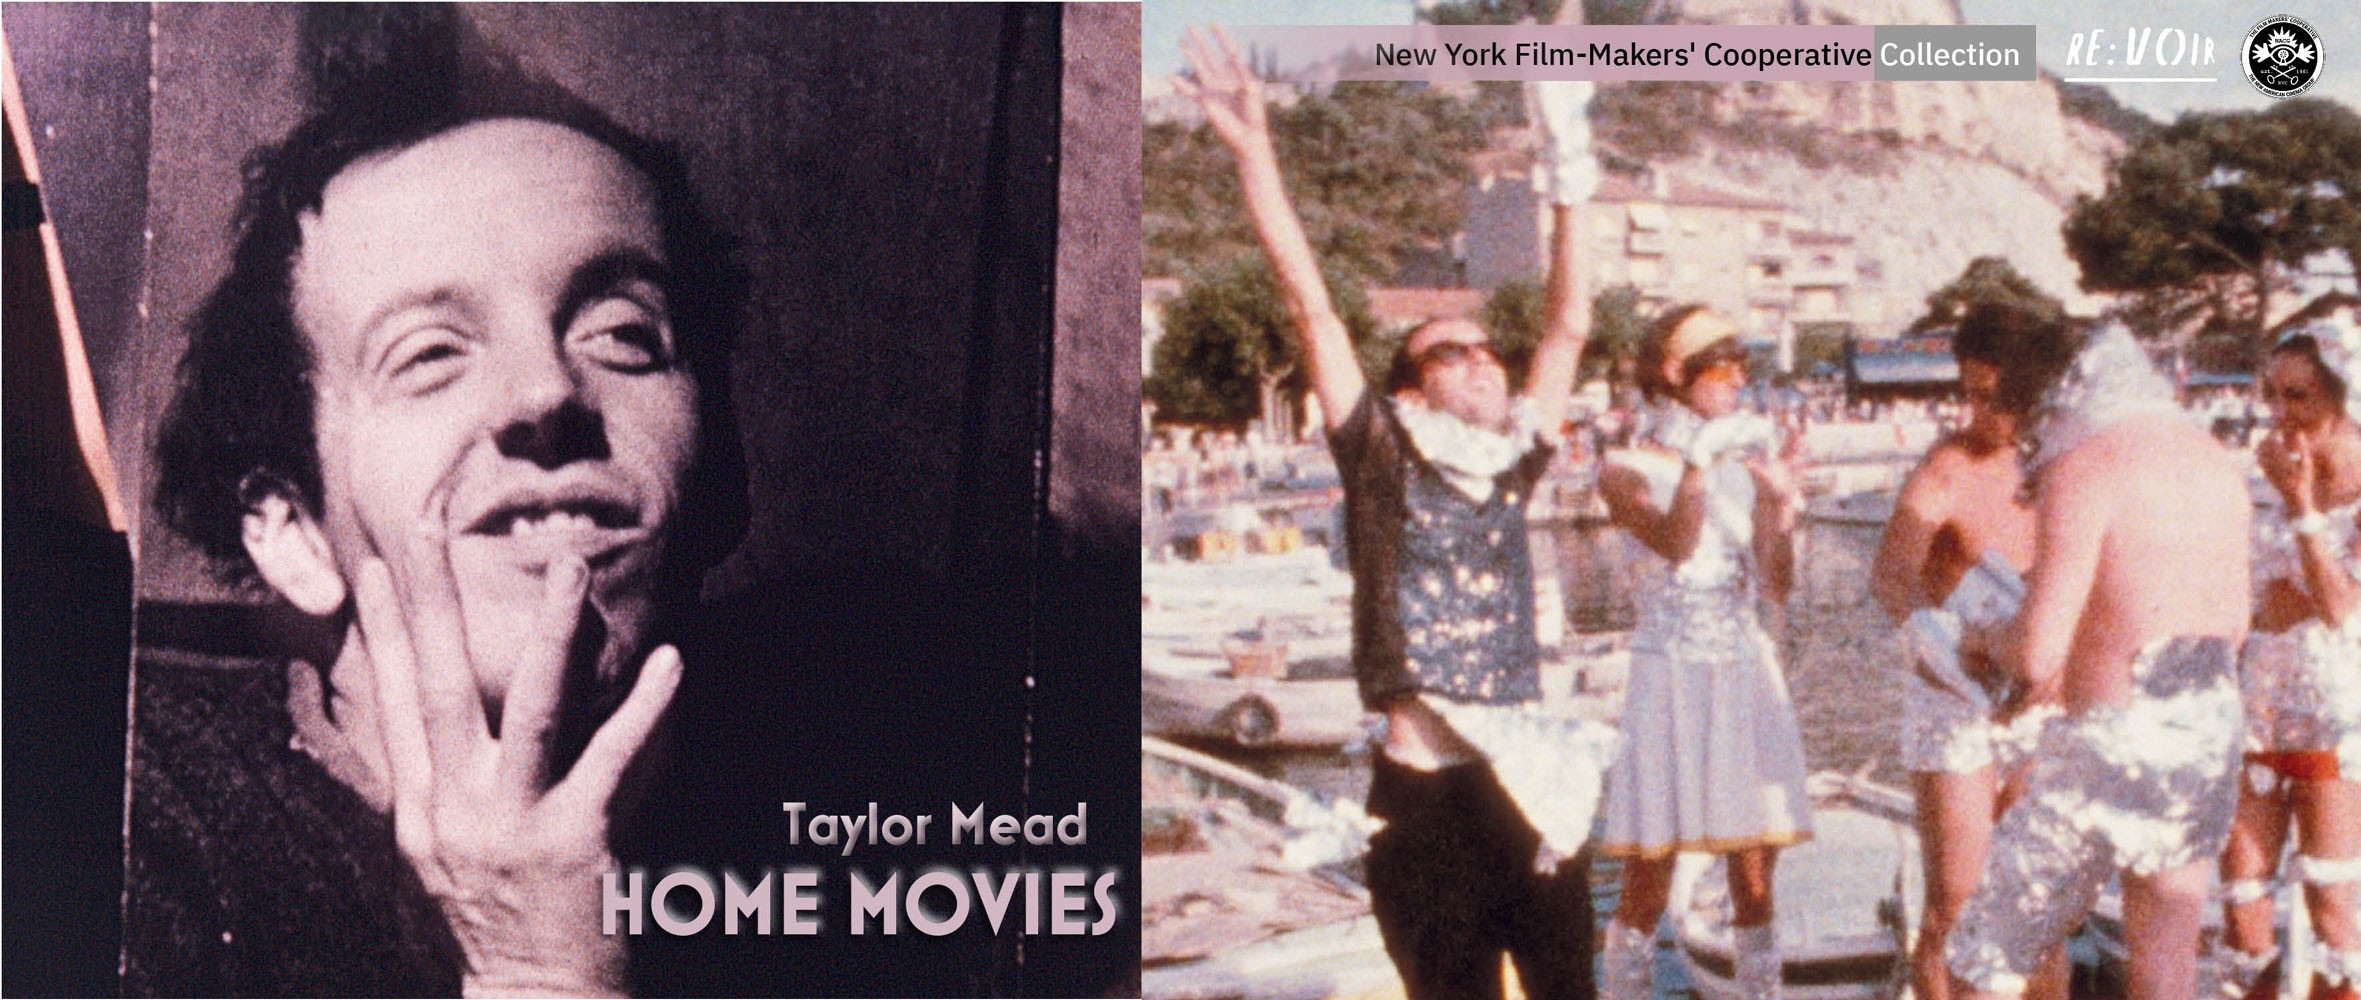 Taylor Mead - Home Movies